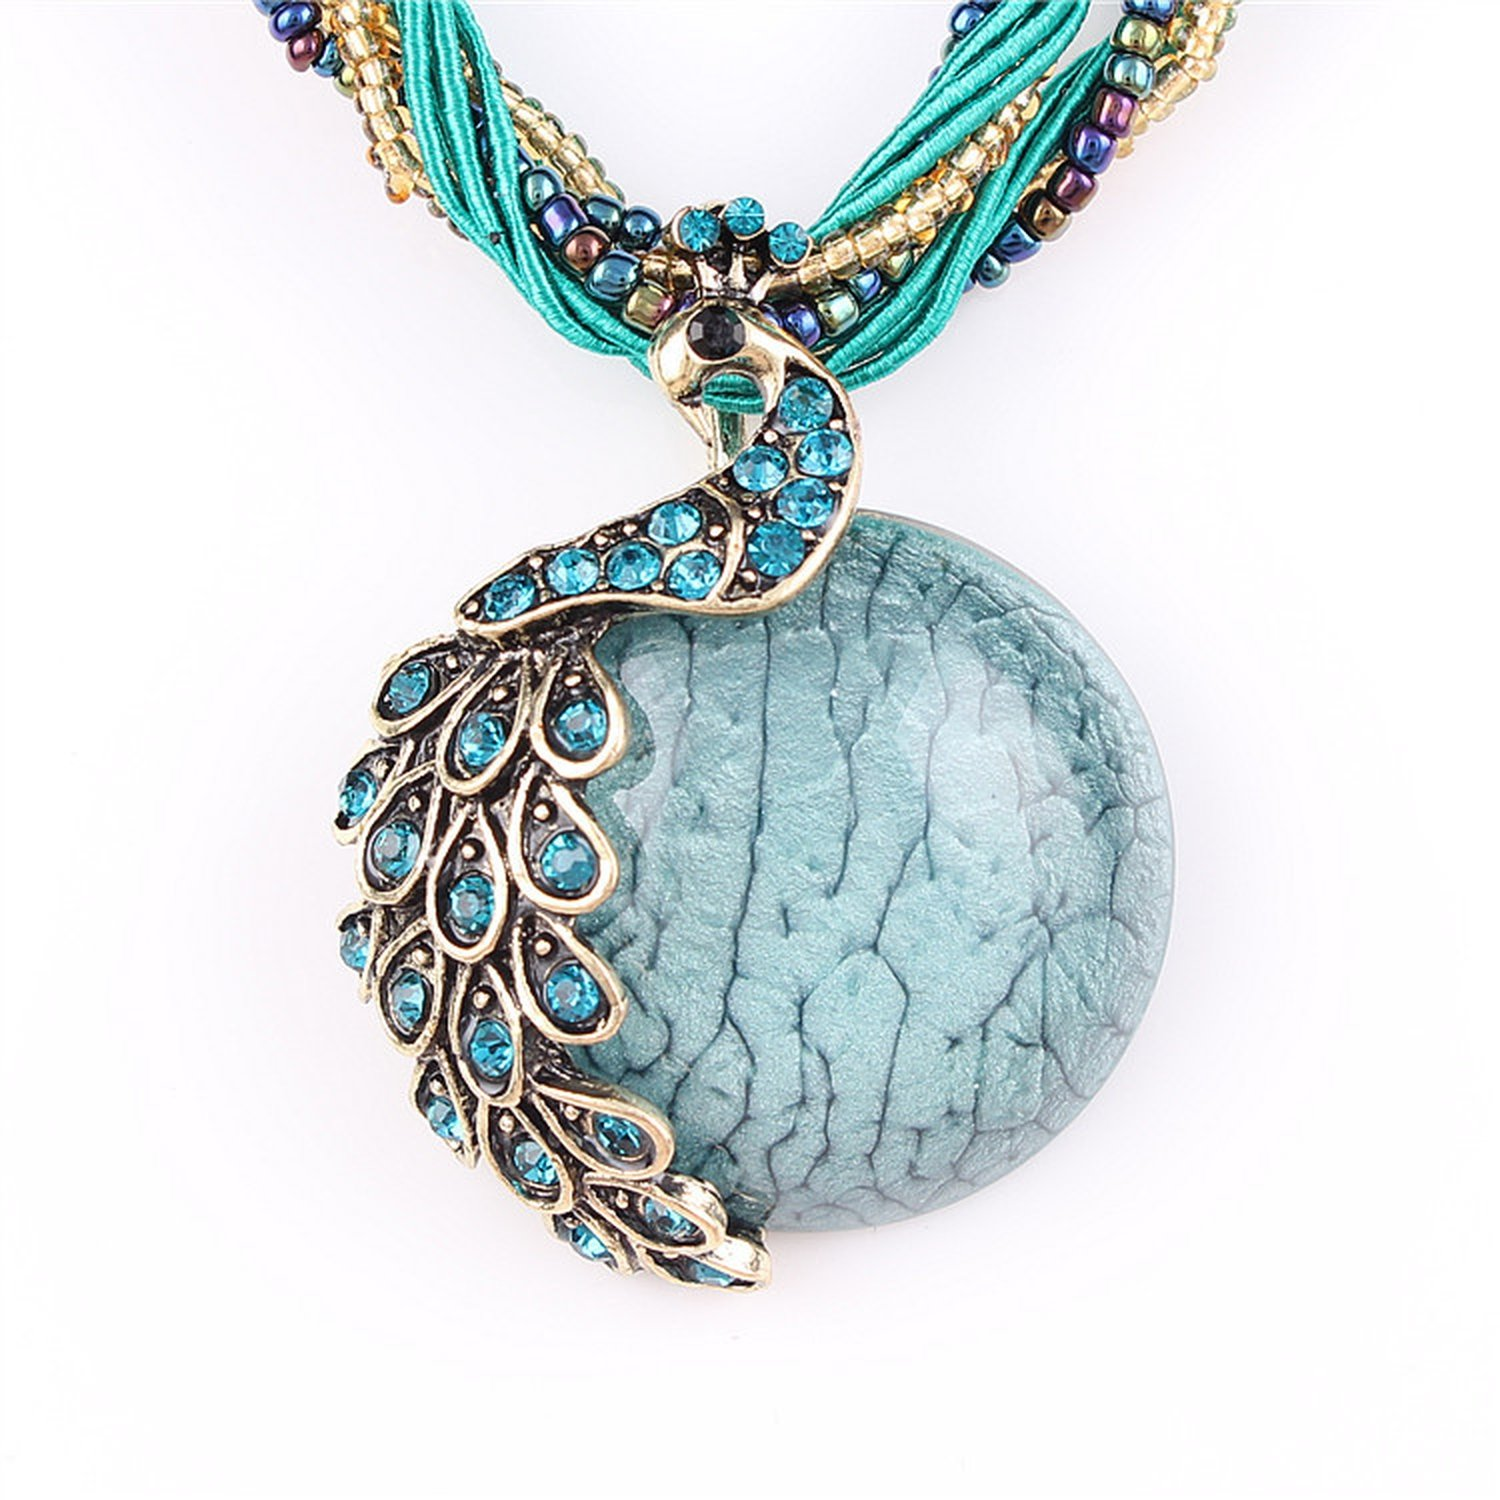 Beancan Blue Natural Crystal Stone Pendant Necklace Peacock Pendant Necklace for Women Jewelry